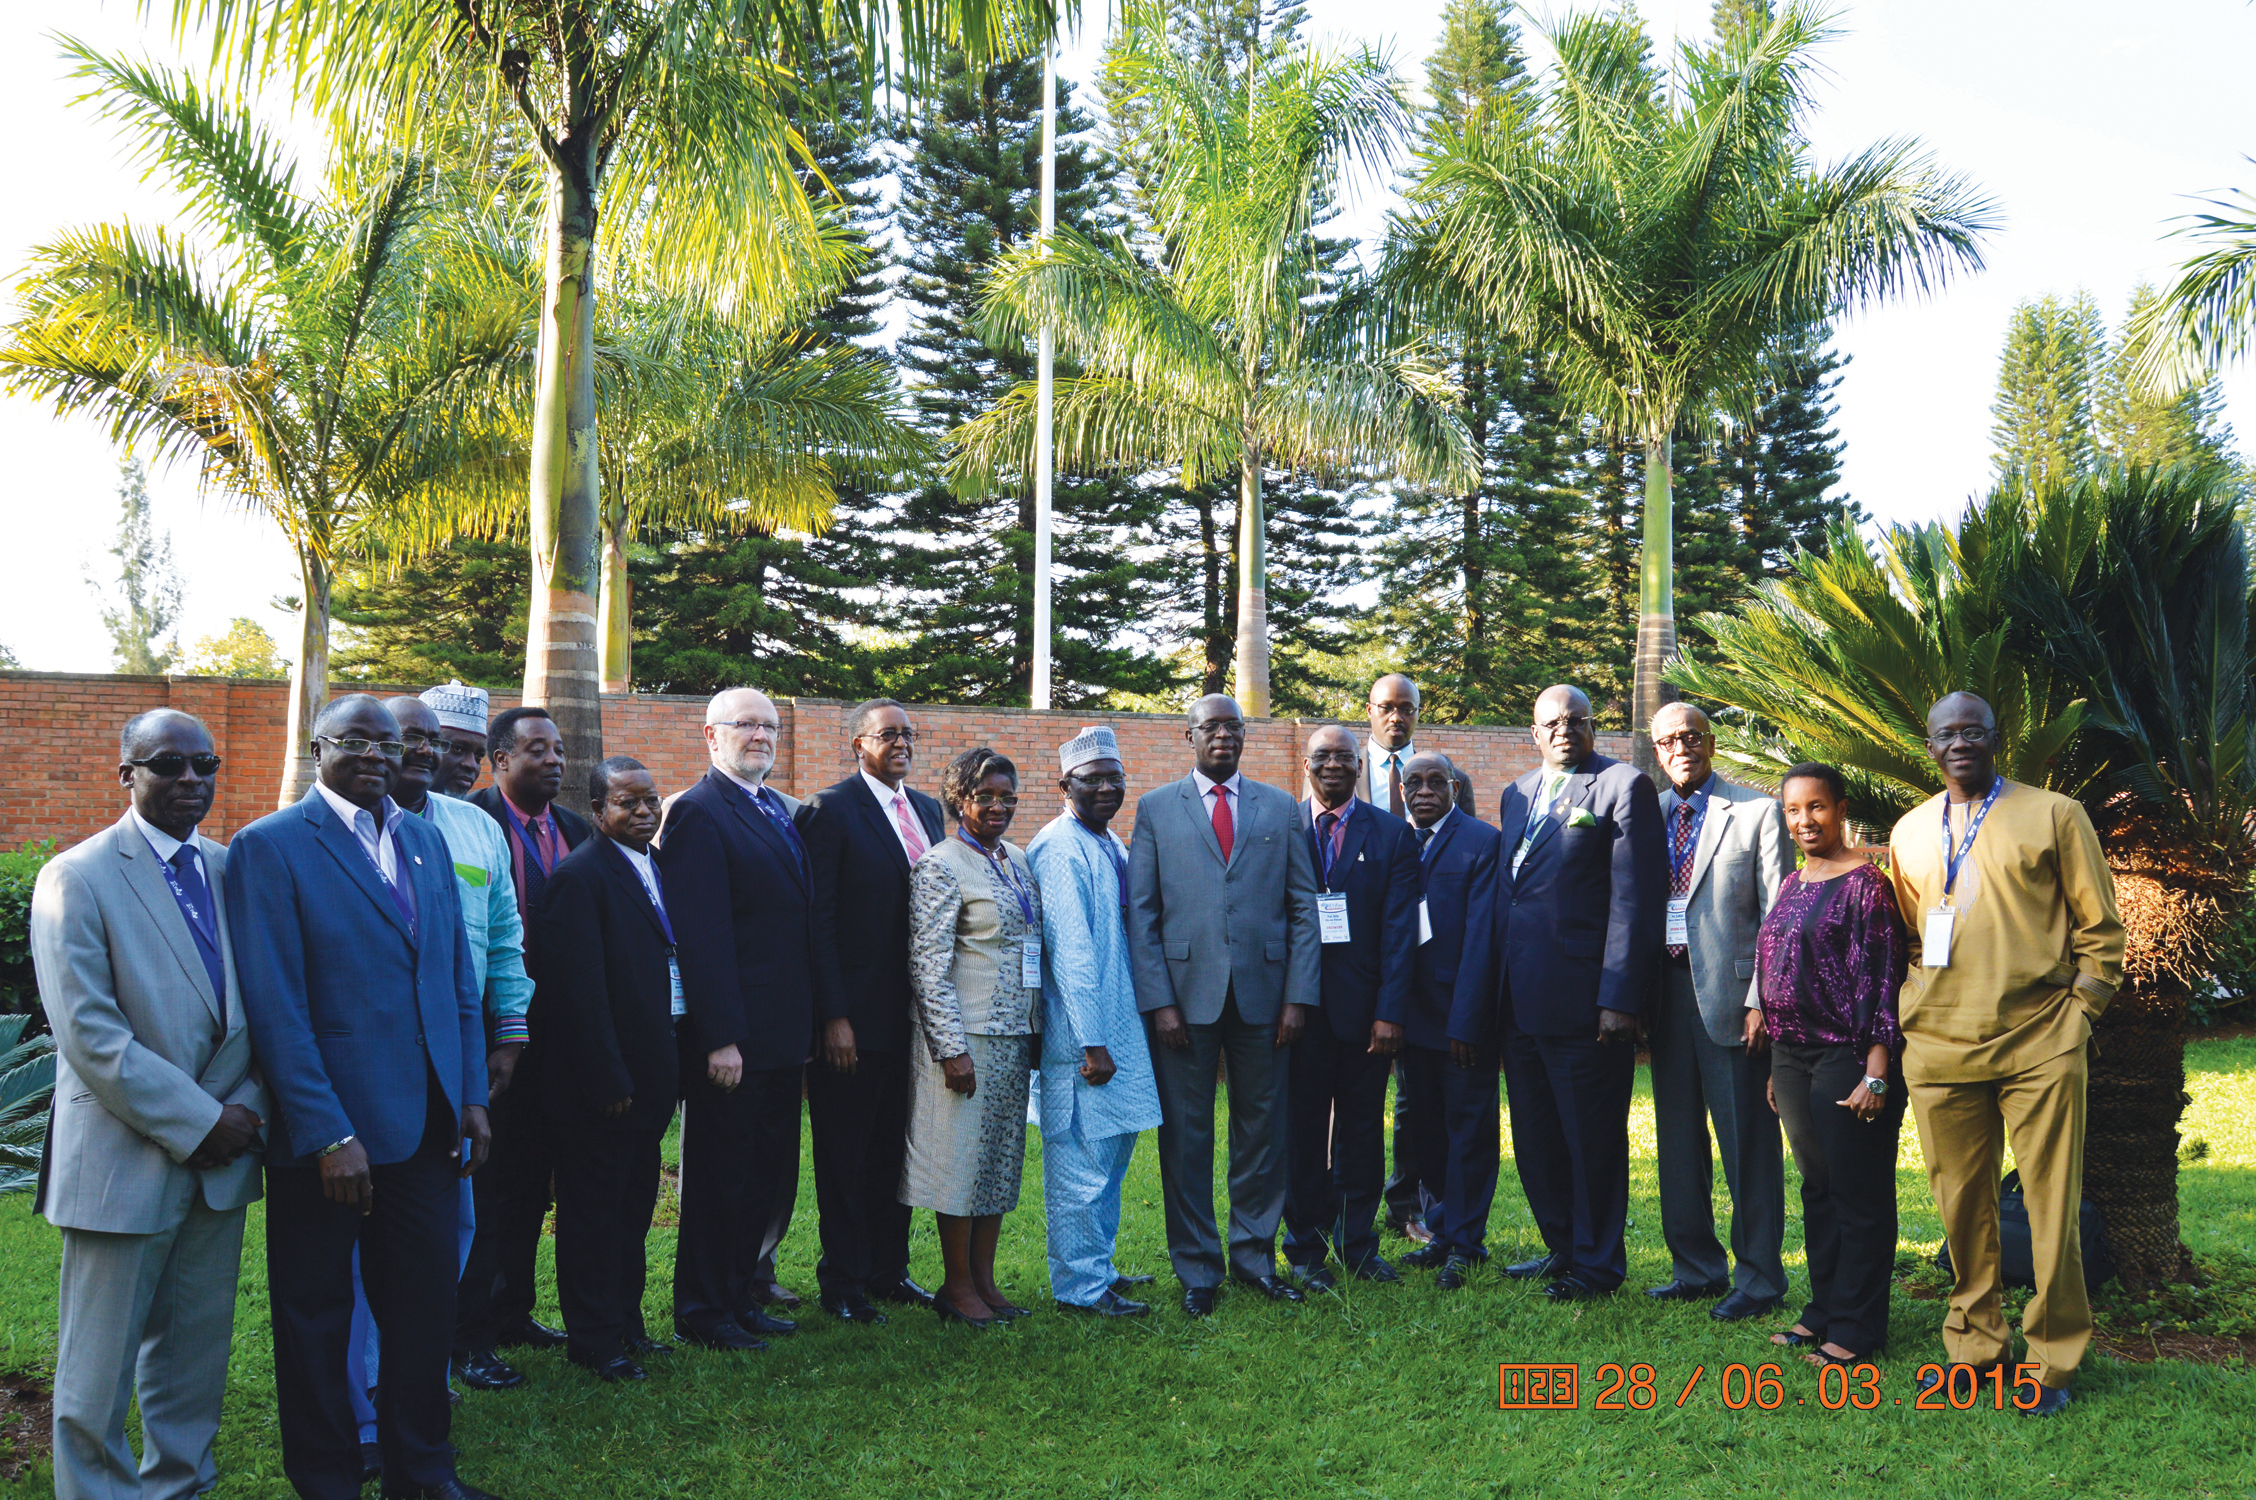 Prime Minister of Rwanda, Mr Anastase Murekezi (Centre), President of the Association of African Universities (AAU) and Vice Chancellor, Federal University of Agriculture, Abeokuta (FUNAAB), Prof Olusola Oyewole (8th from right) with other members of the AAU delegation during a courtesy call on the former in Kigali yesterday. PHOTO: INTELLECTUAL MAGAZINE